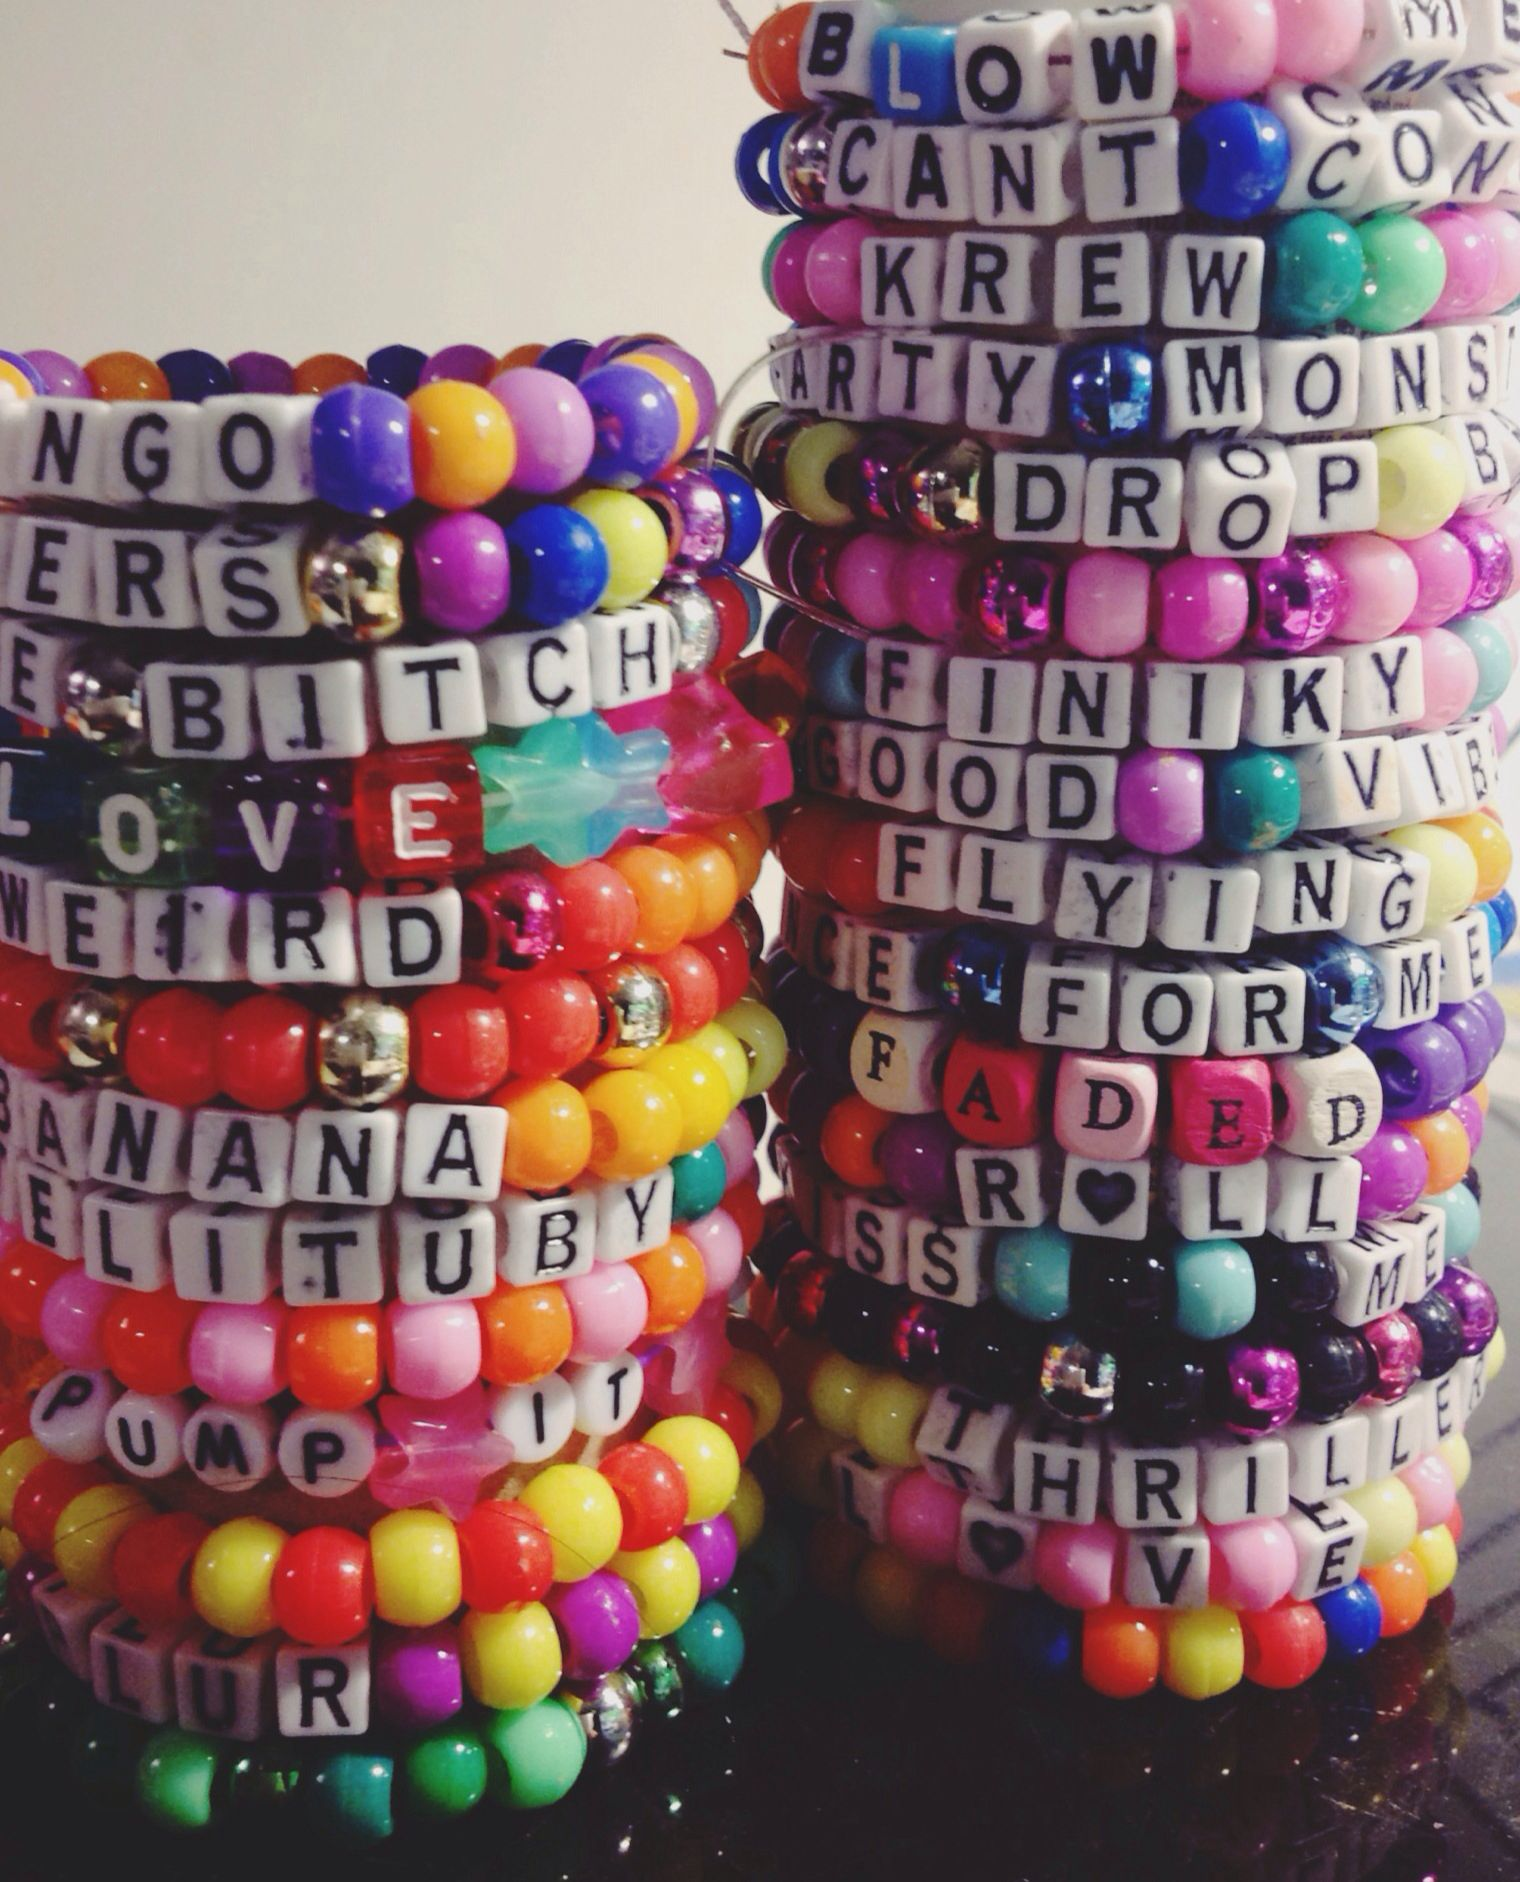 25 Best Images About Kandi On Pinterest: Kandi Plur This Board Is For All #EDMMusic Lovers Who Dig